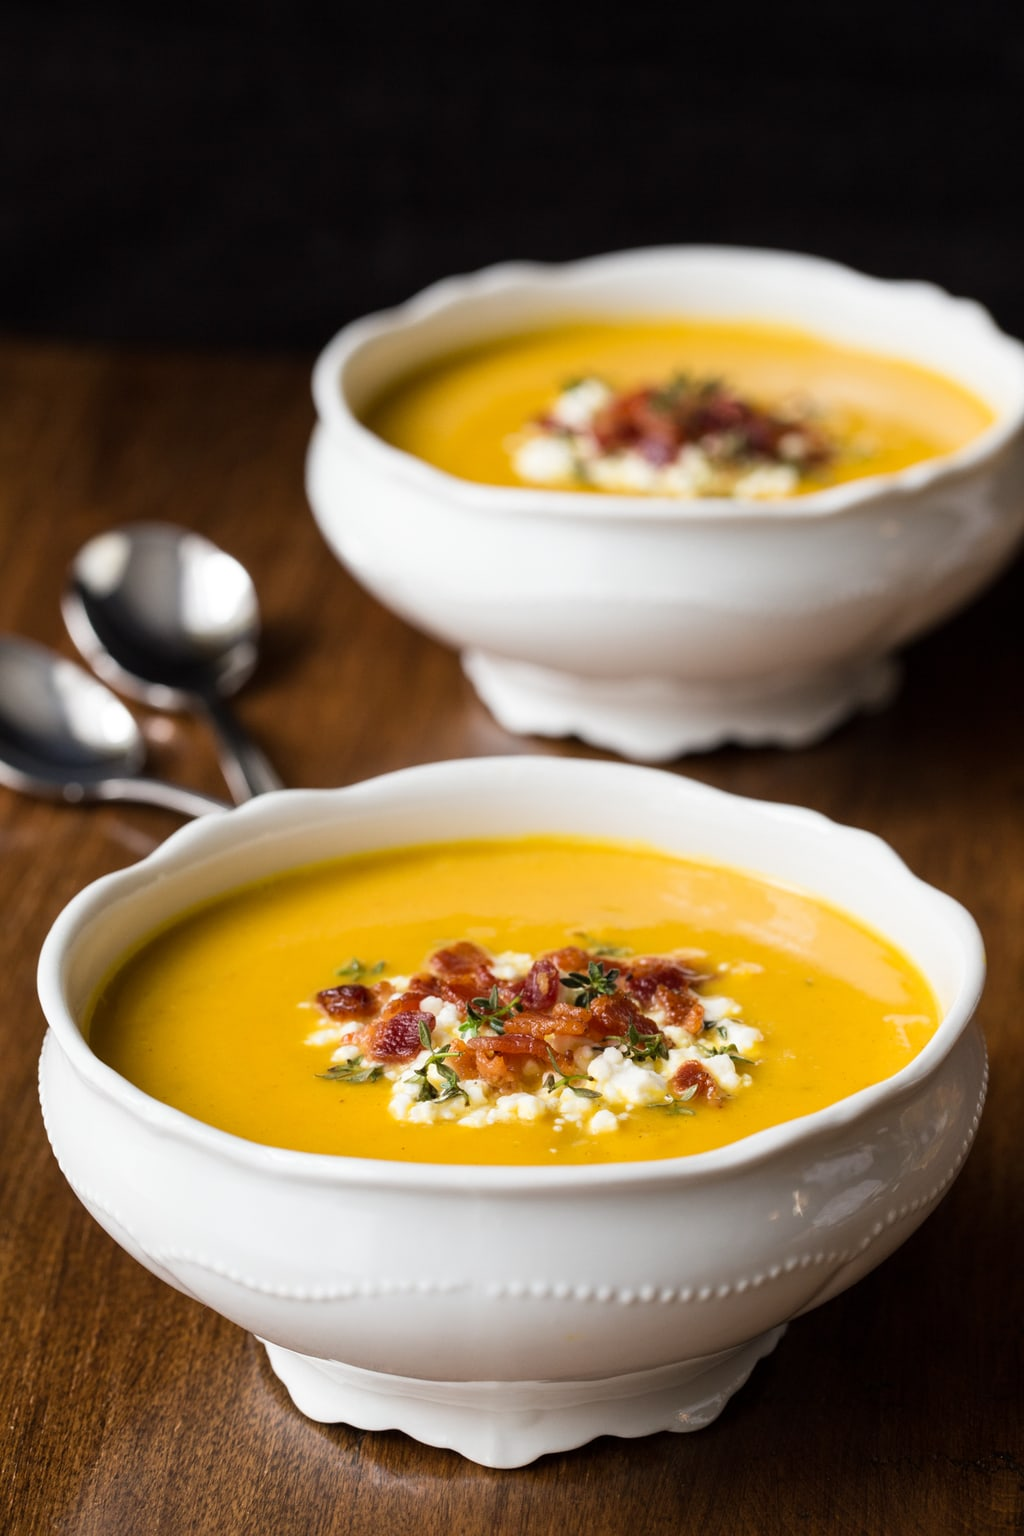 Vertical picture of Butternut Squash and Bacon Soup in white bowls on a wooden table